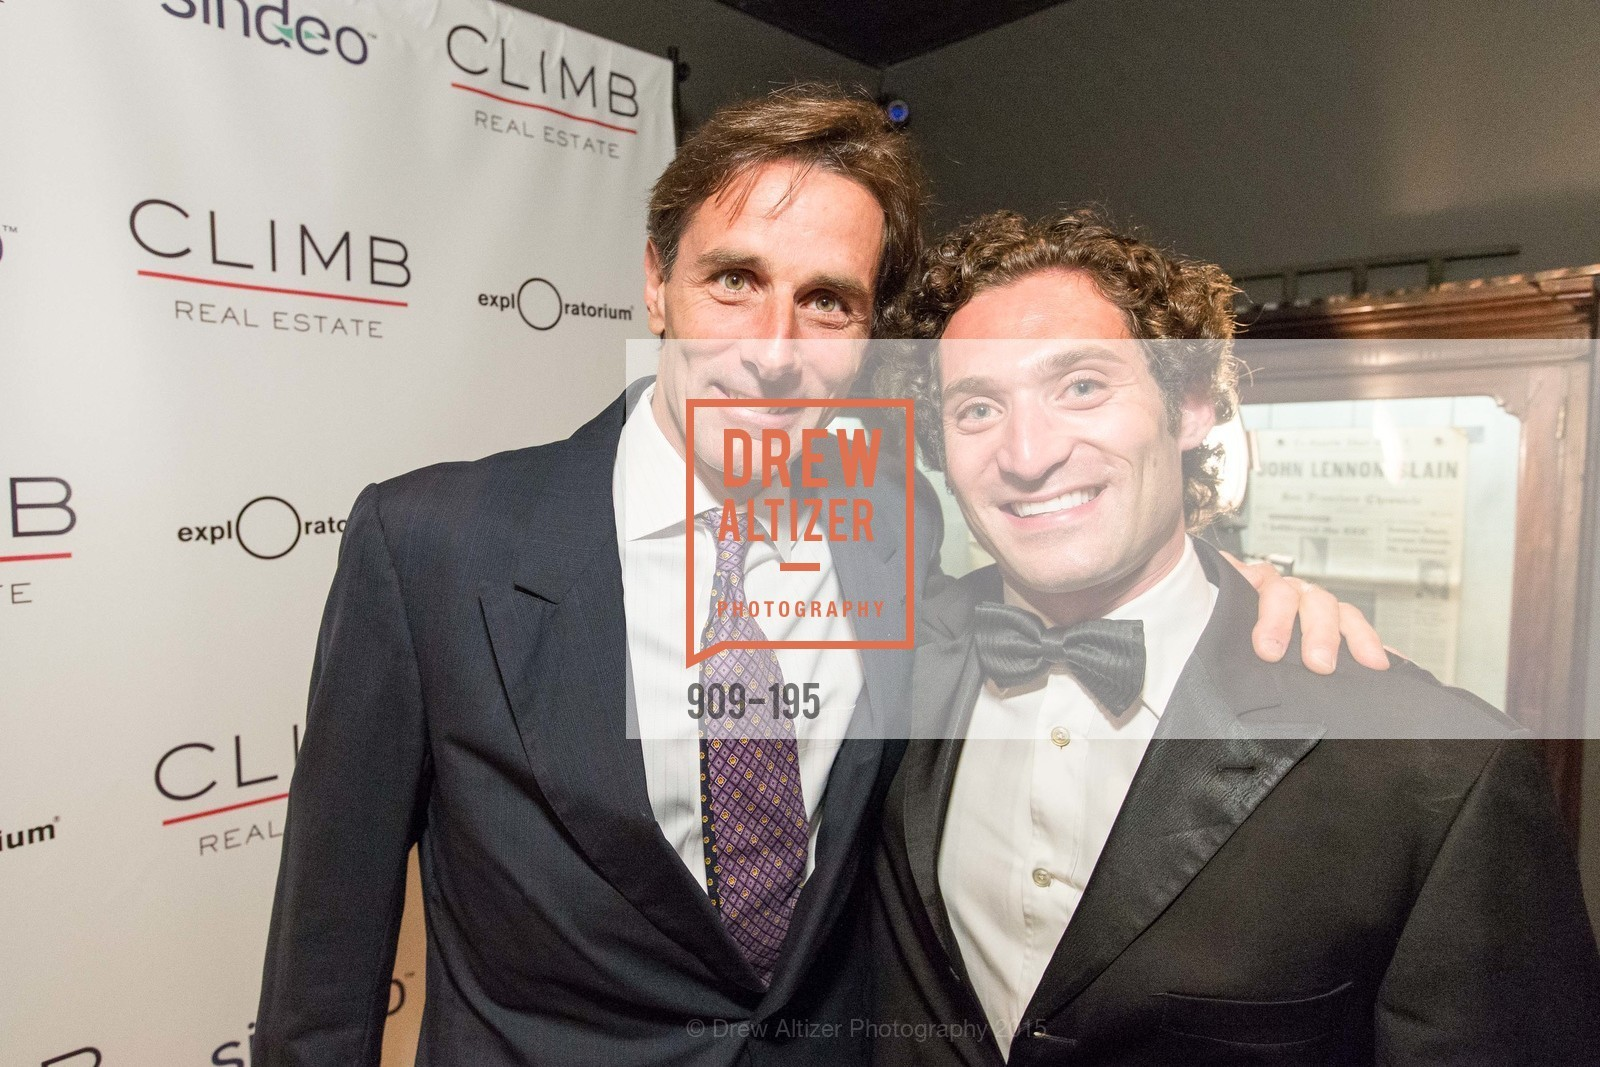 Paul Pelosi Jr., Justin Fichelson, Climb Real Estate and Sindeo Celebrate the Launch of Million Dollar Listing San Francisco, Local Edition San Francisco. 691 Market St, July 8th, 2015,Drew Altizer, Drew Altizer Photography, full-service agency, private events, San Francisco photographer, photographer california